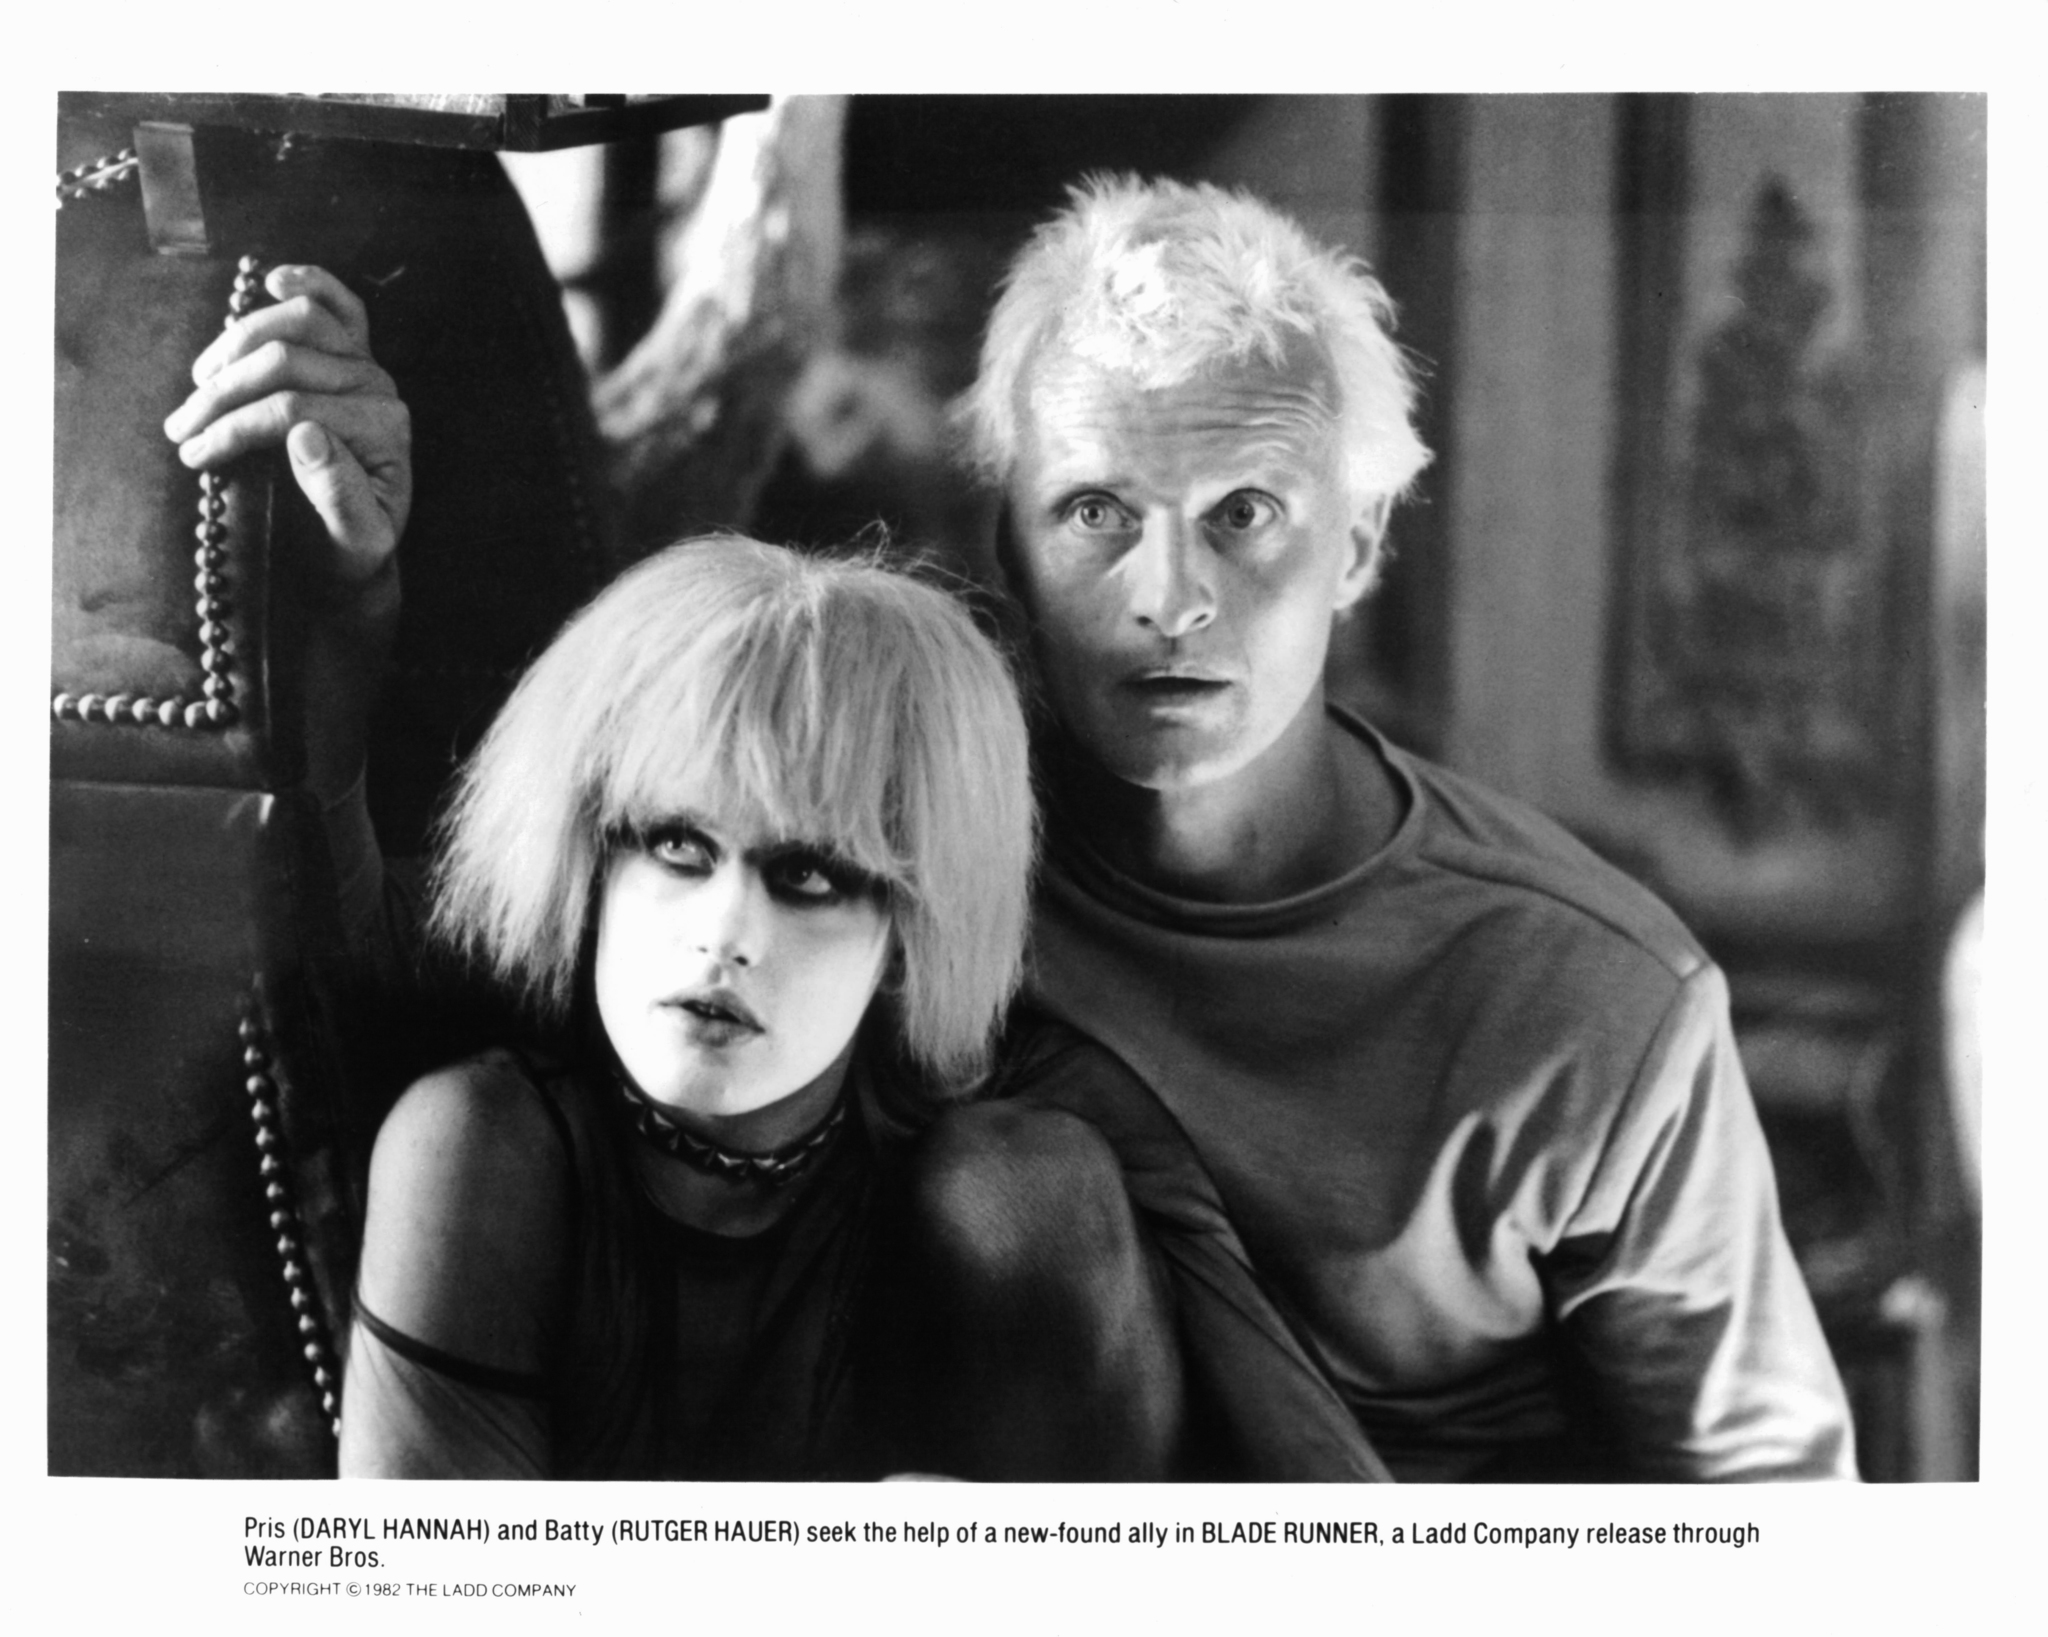 Daryl Hannah and Rutger Hauer in Blade Runner (1982)